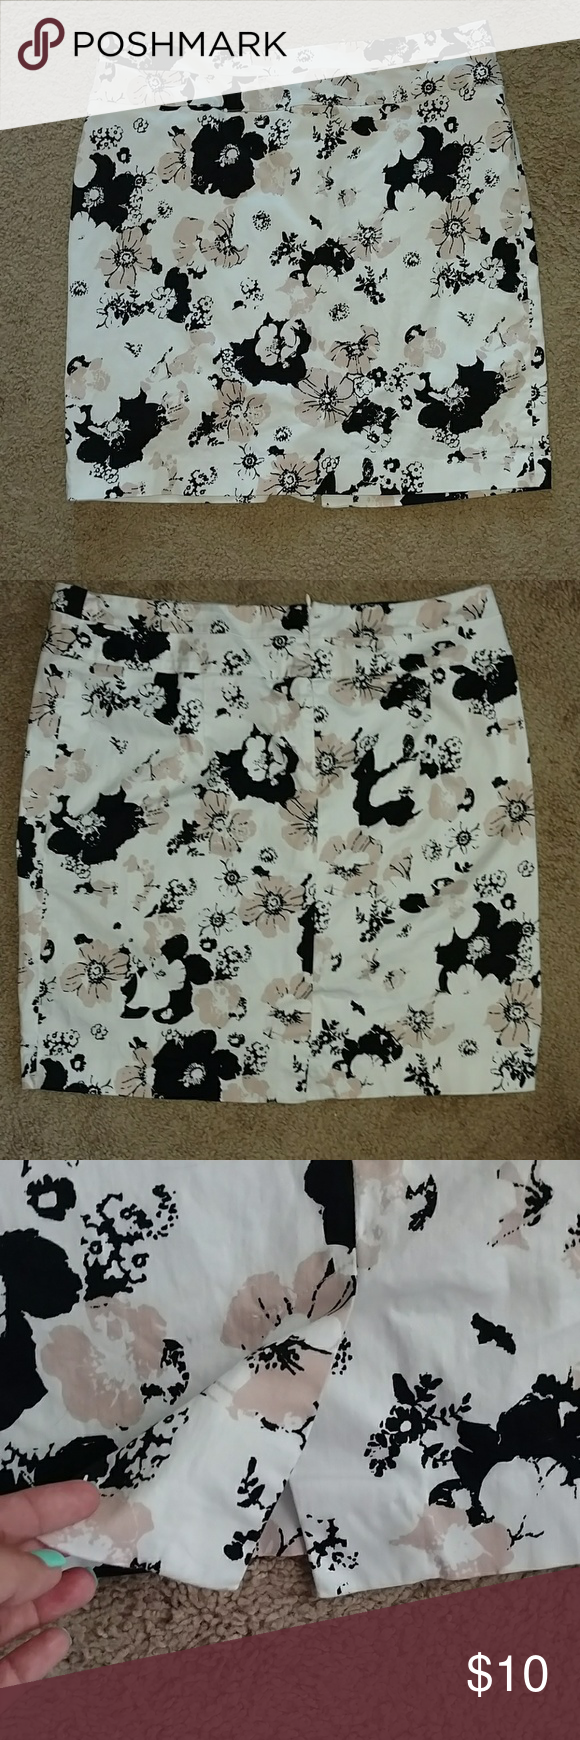 Super cute pencil skirt! White with black and light peace floral design. Size 14. Like new condition. Smoke free home. Zip back with small slit in the back. Donna Ricco Skirts Midi